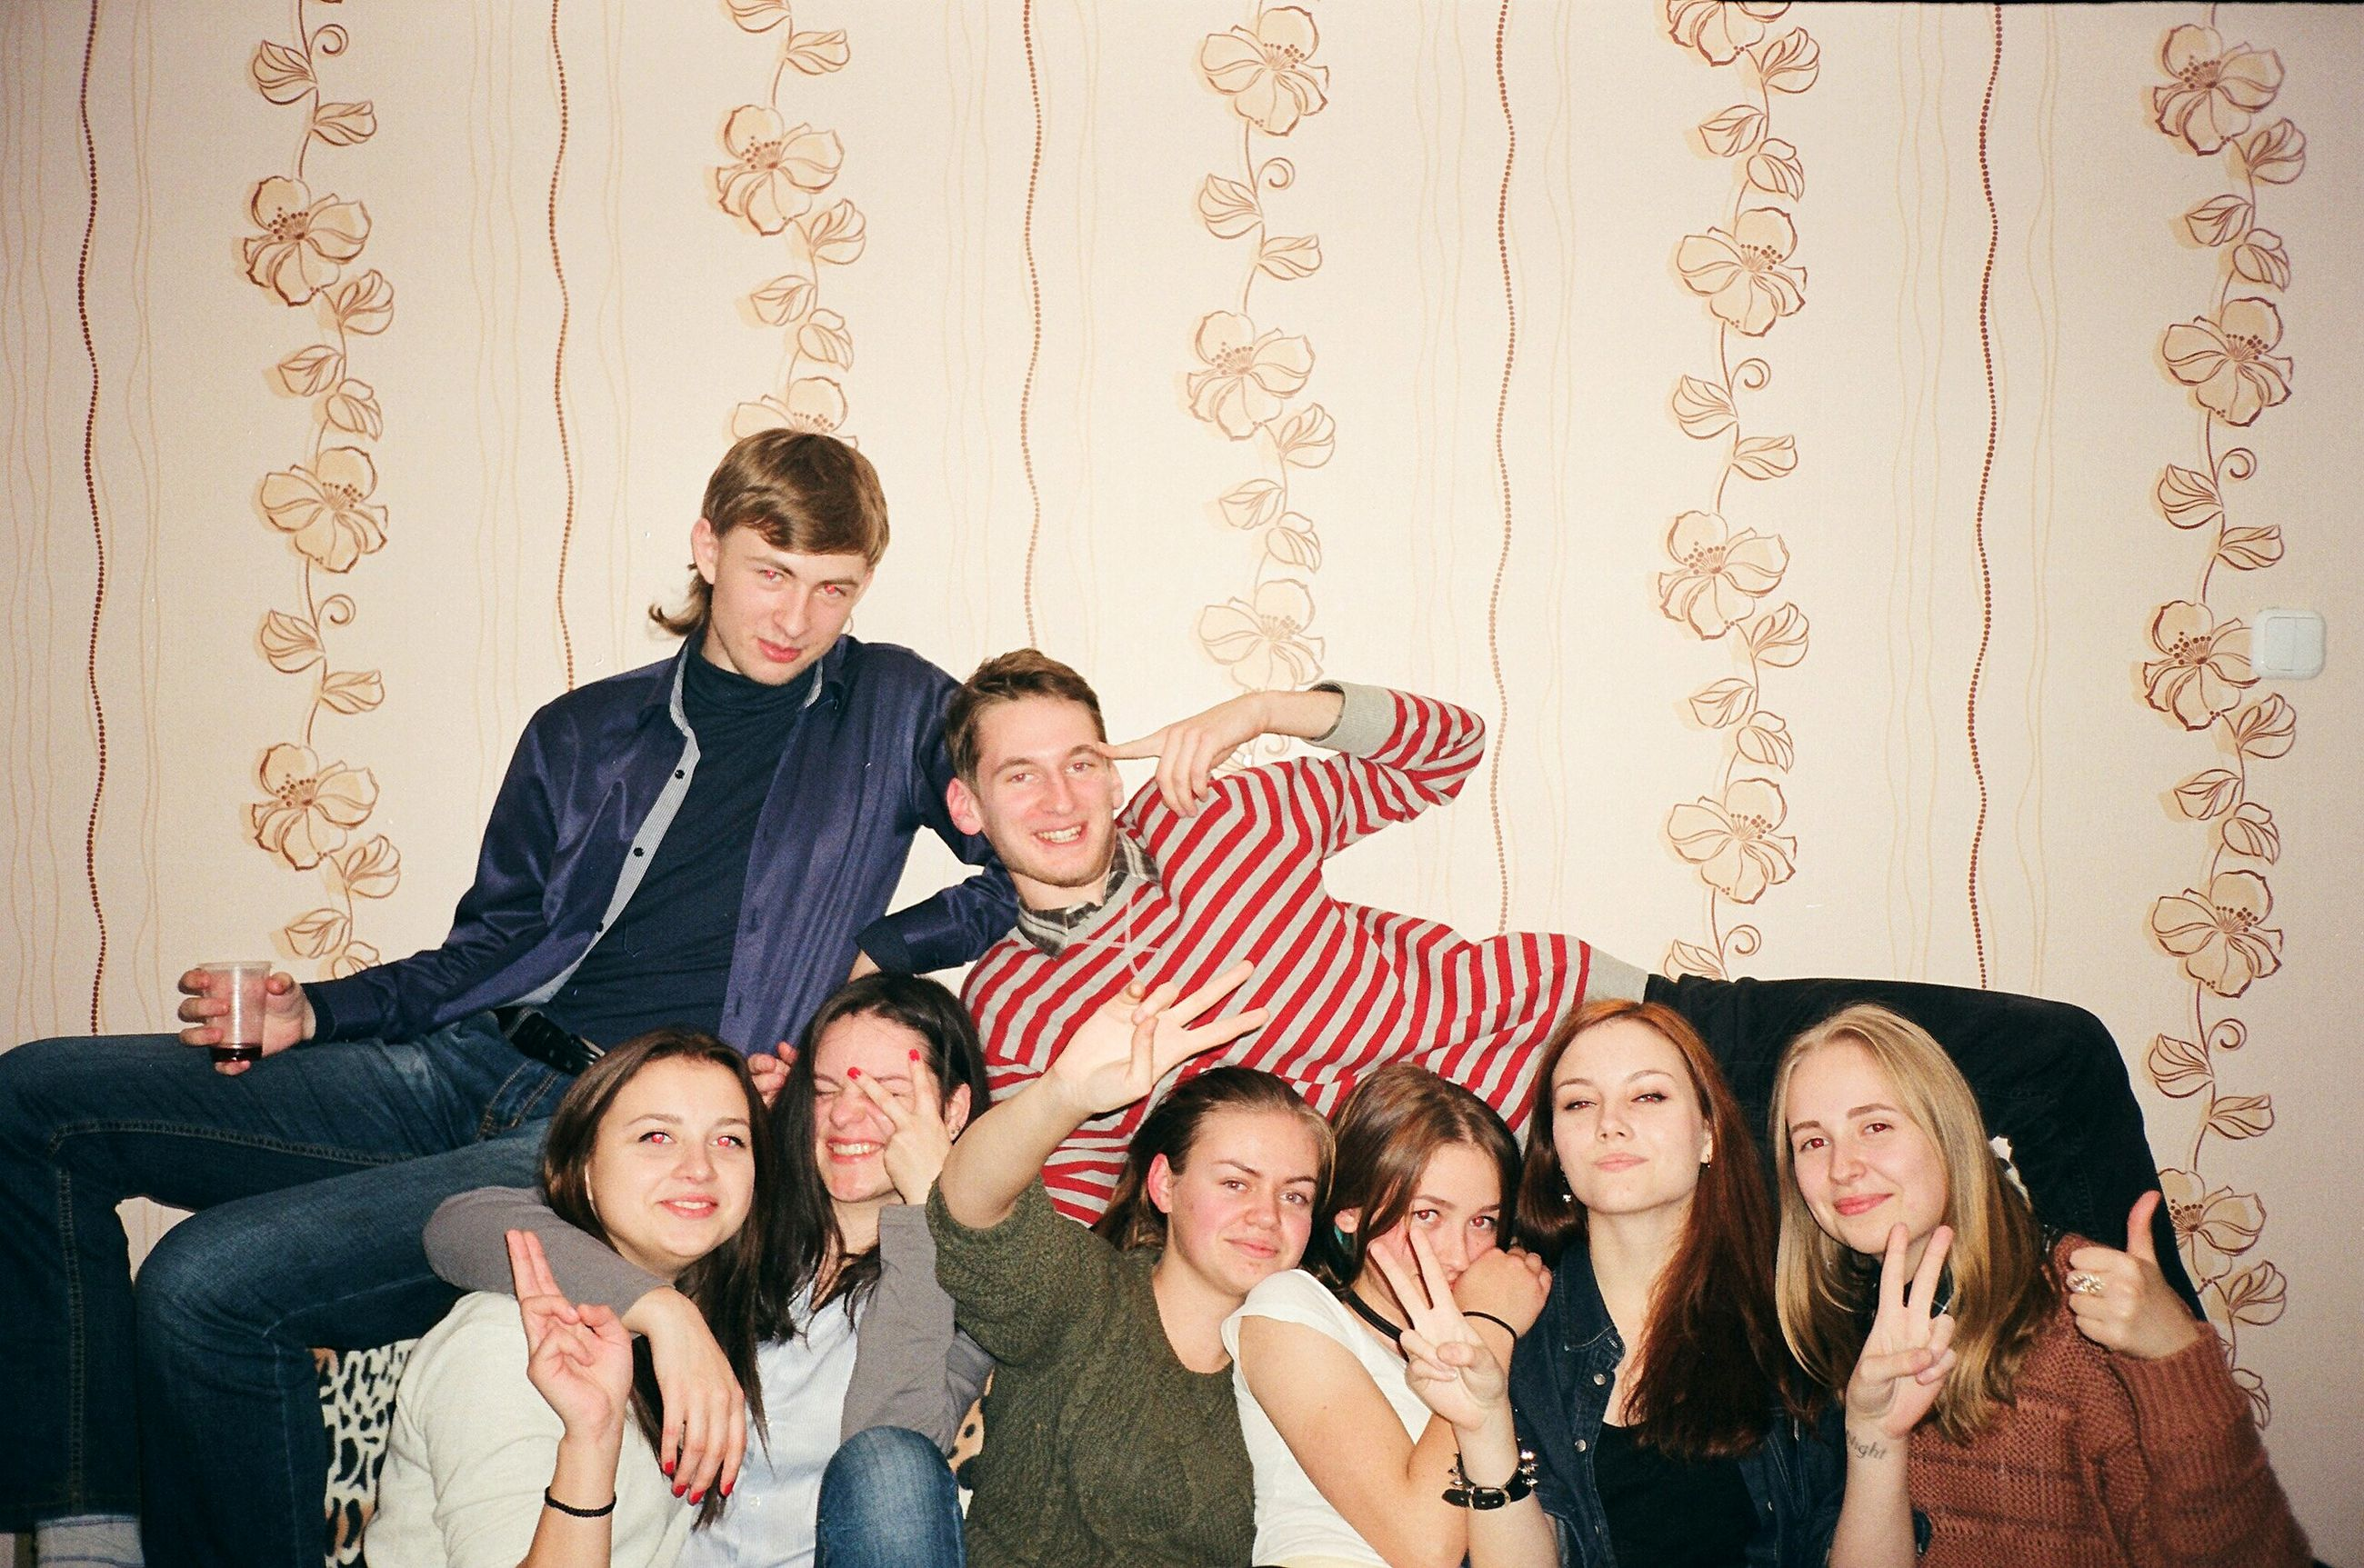 celebration, indoors, party - social event, wallpaper, happiness, looking at camera, fun, portrait, people, cheerful, togetherness, smiling, friendship, lifestyles, blond hair, young adult, men, adult, real people, young women, adults only, day